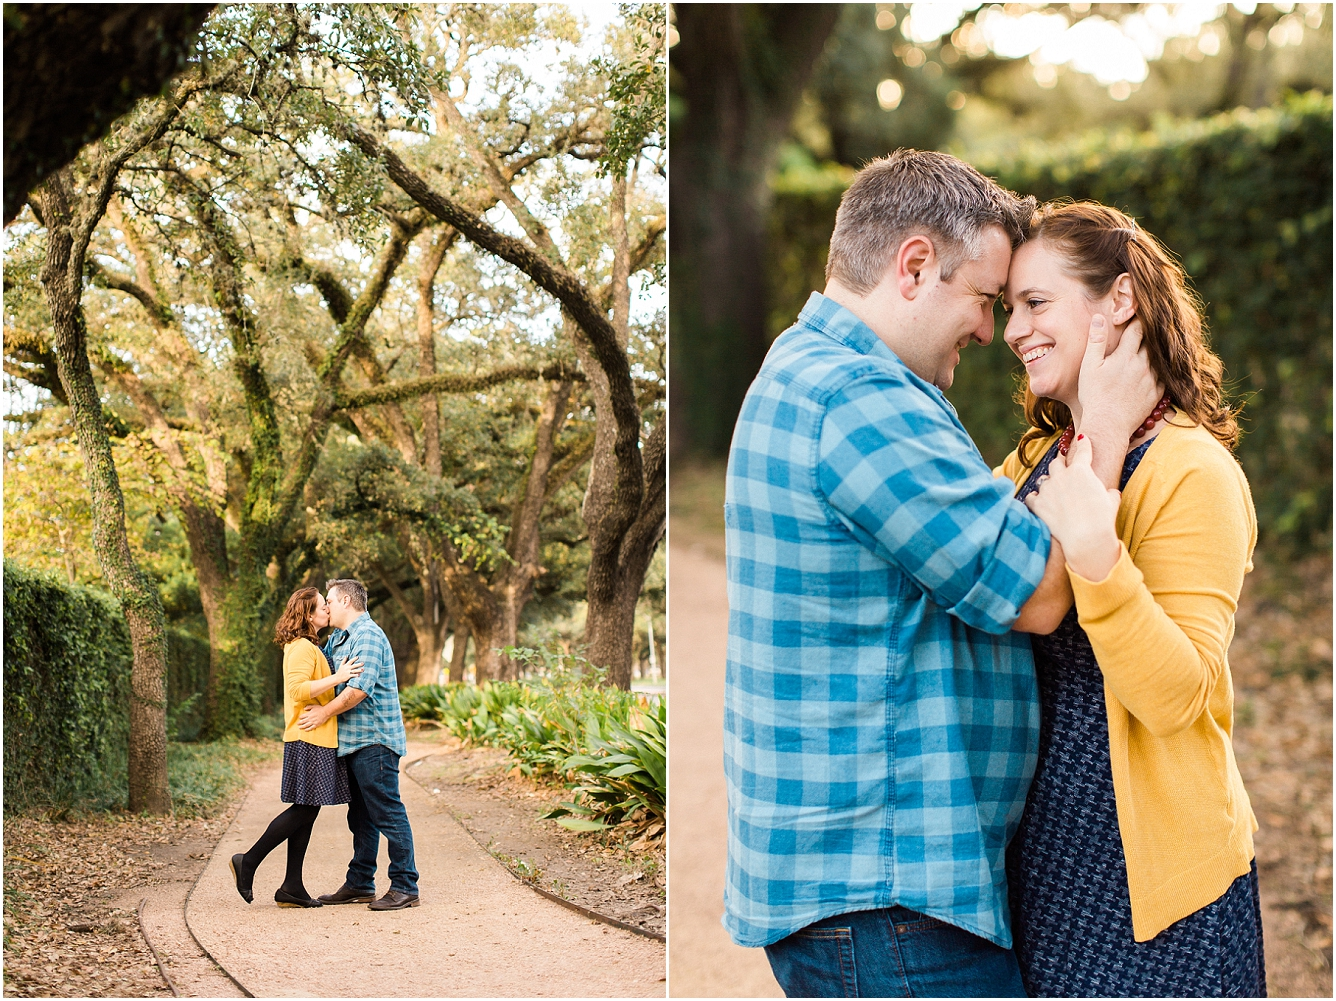 Hermann Park Anniversary Session Houston TX Photographer_02